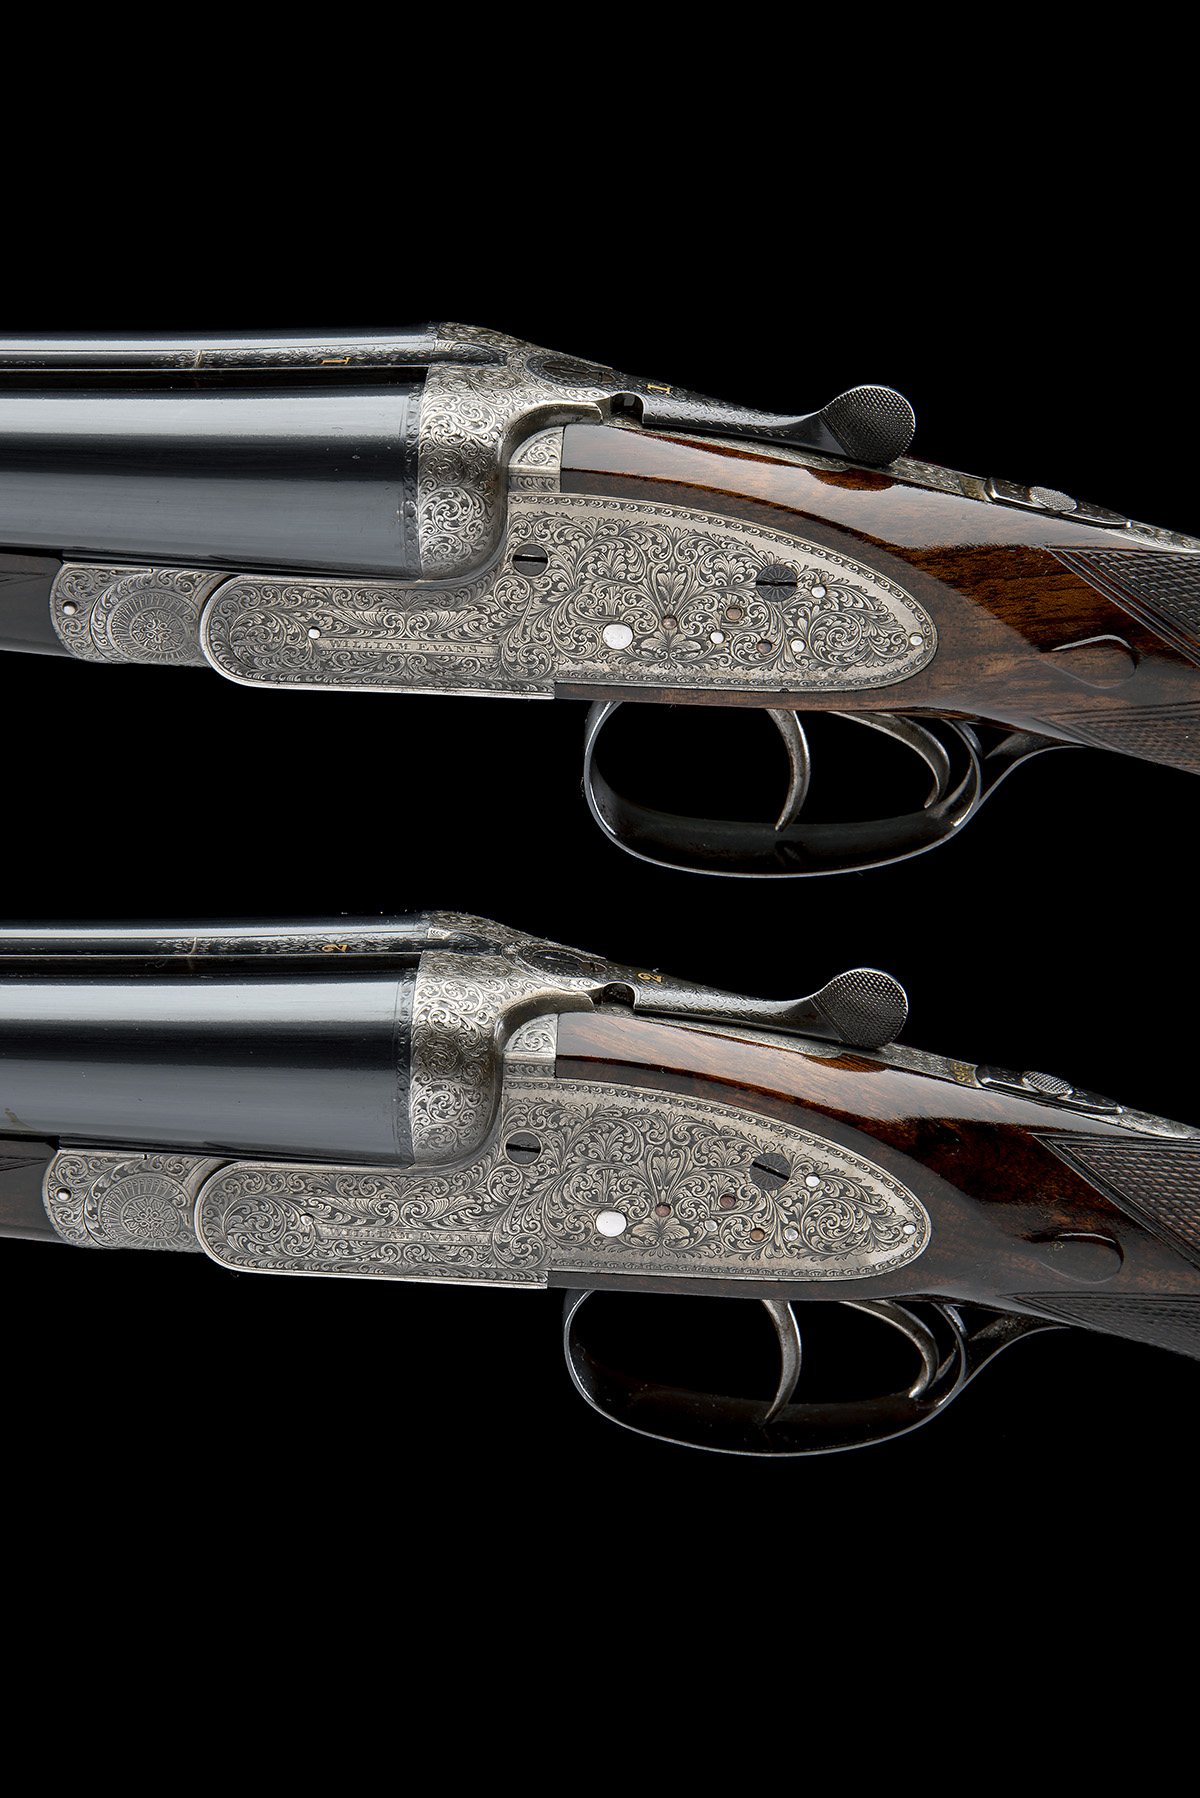 WILLIAM EVANS A PAIR OF 12-BORE SIDELOCK EJECTORS, serial no. 12995 / 6, for 1923, 30in. nitro - Image 7 of 12